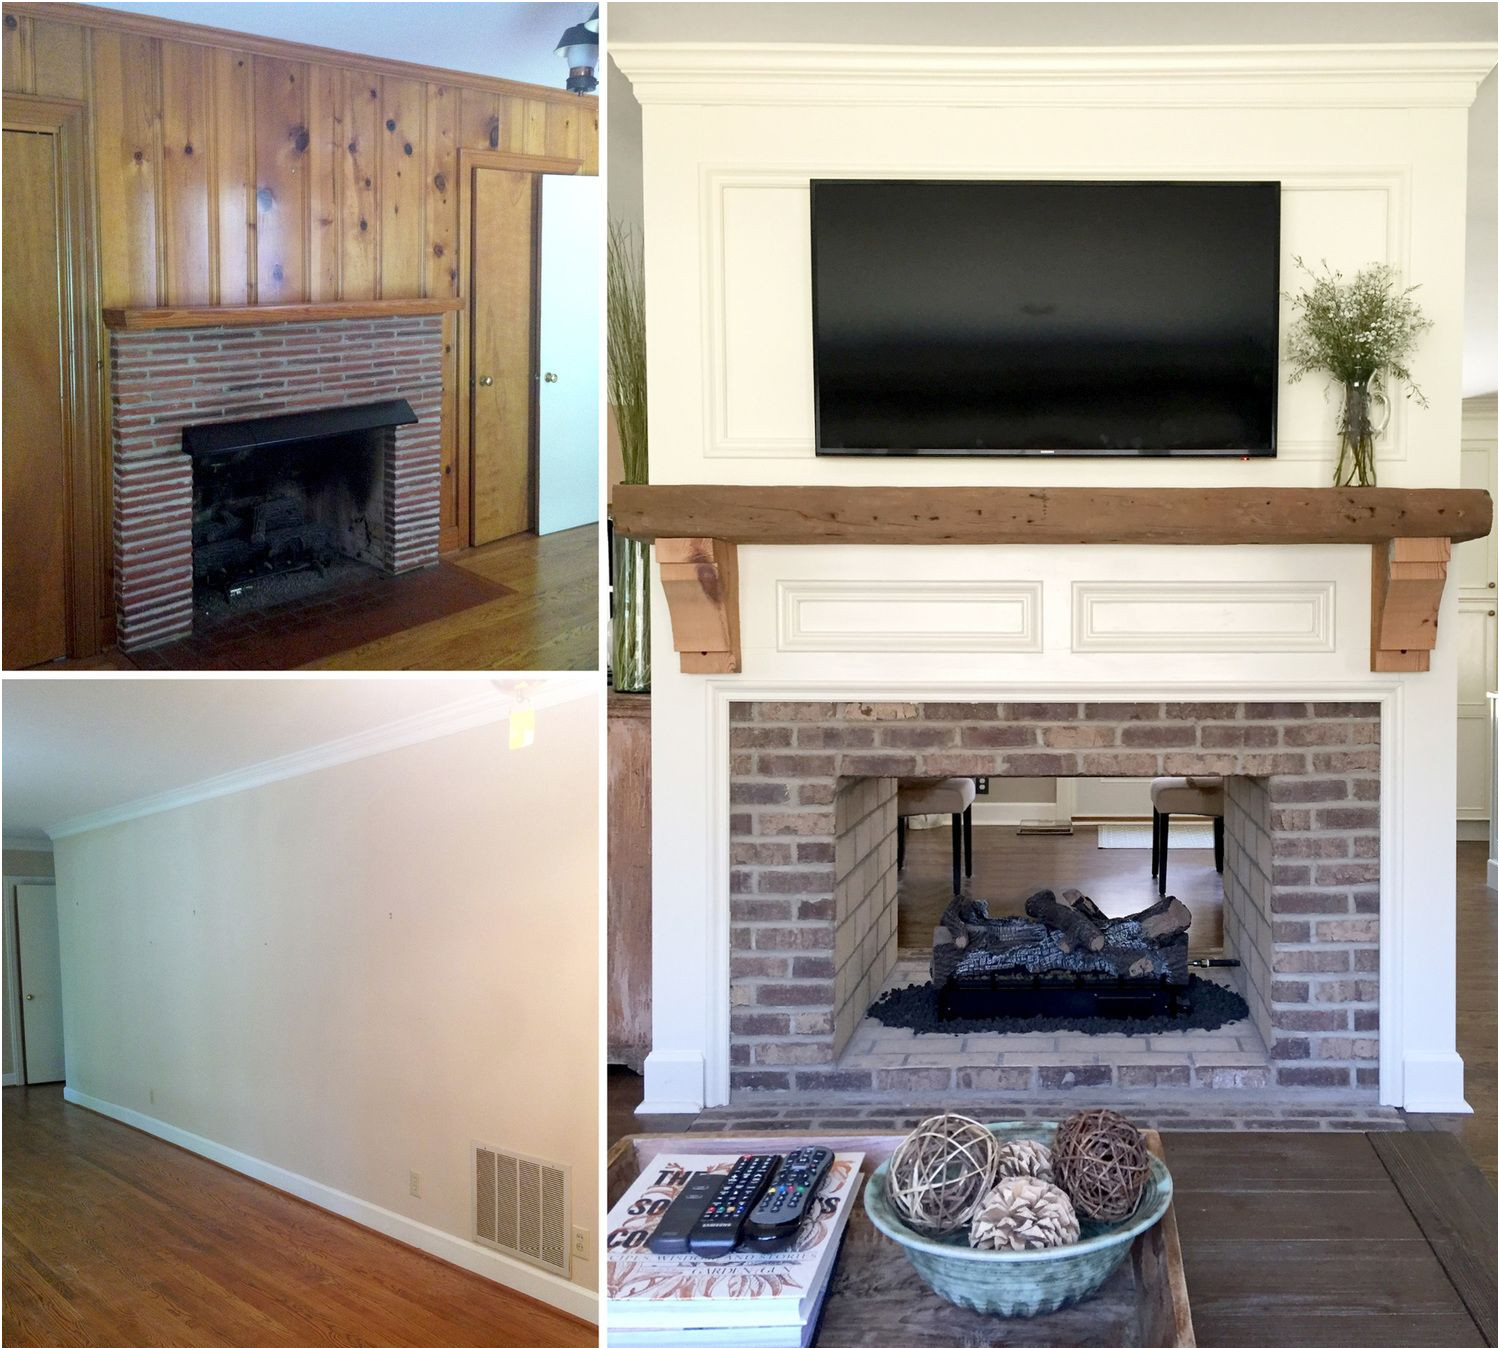 Fireplace Brick Remodel Awesome Fireplace Renovation Converting A Single Sided Fireplace to